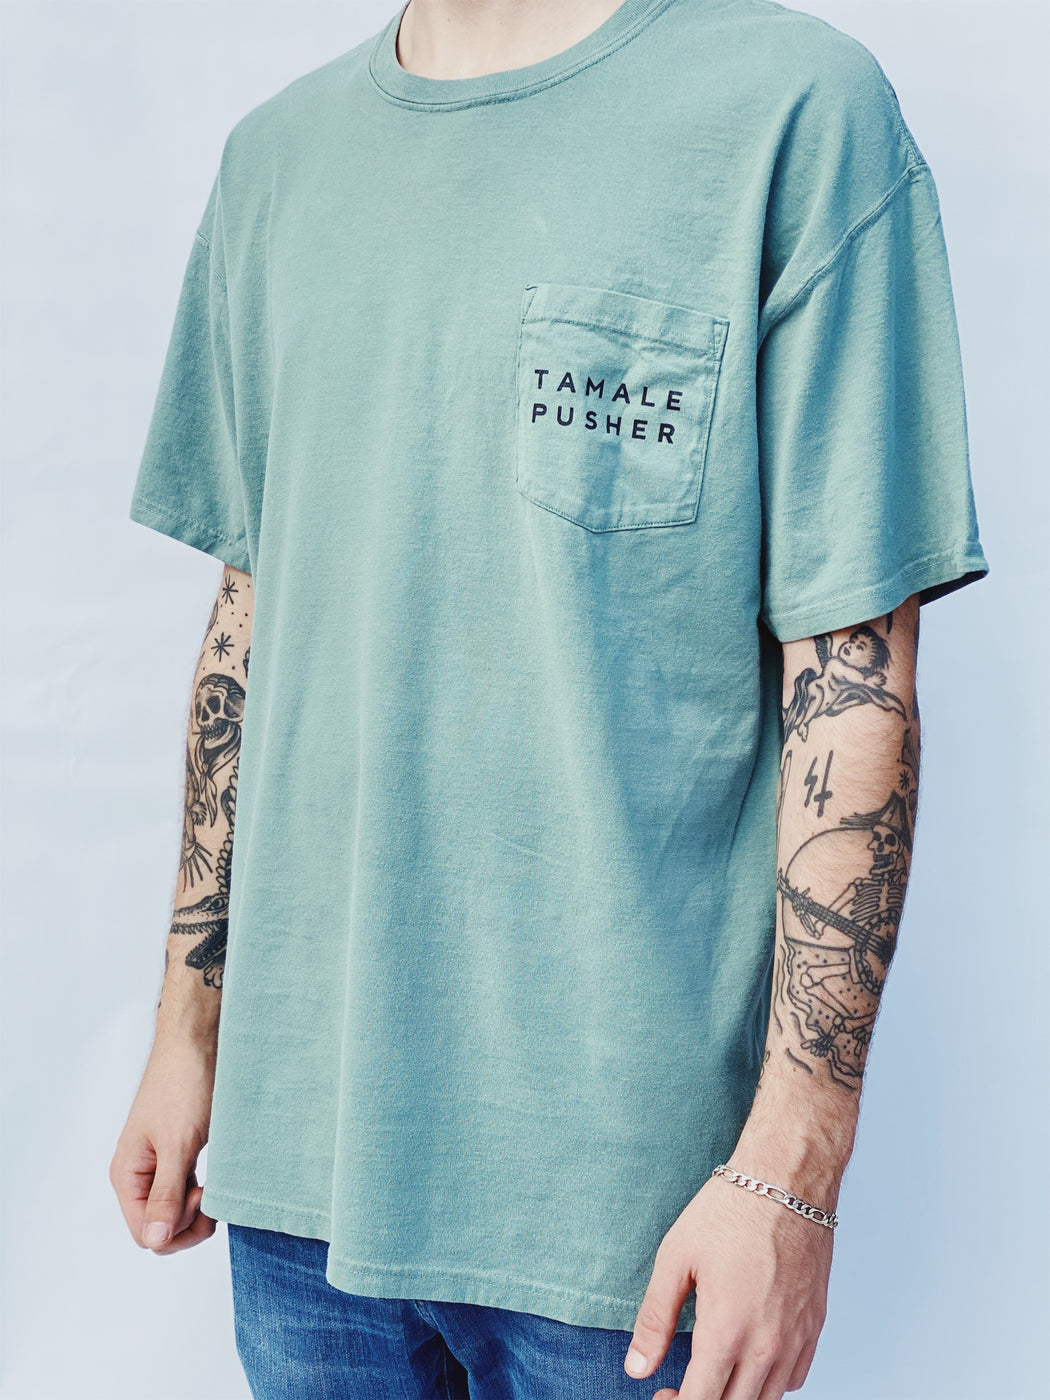 Pusher Tee - The Tamale Company